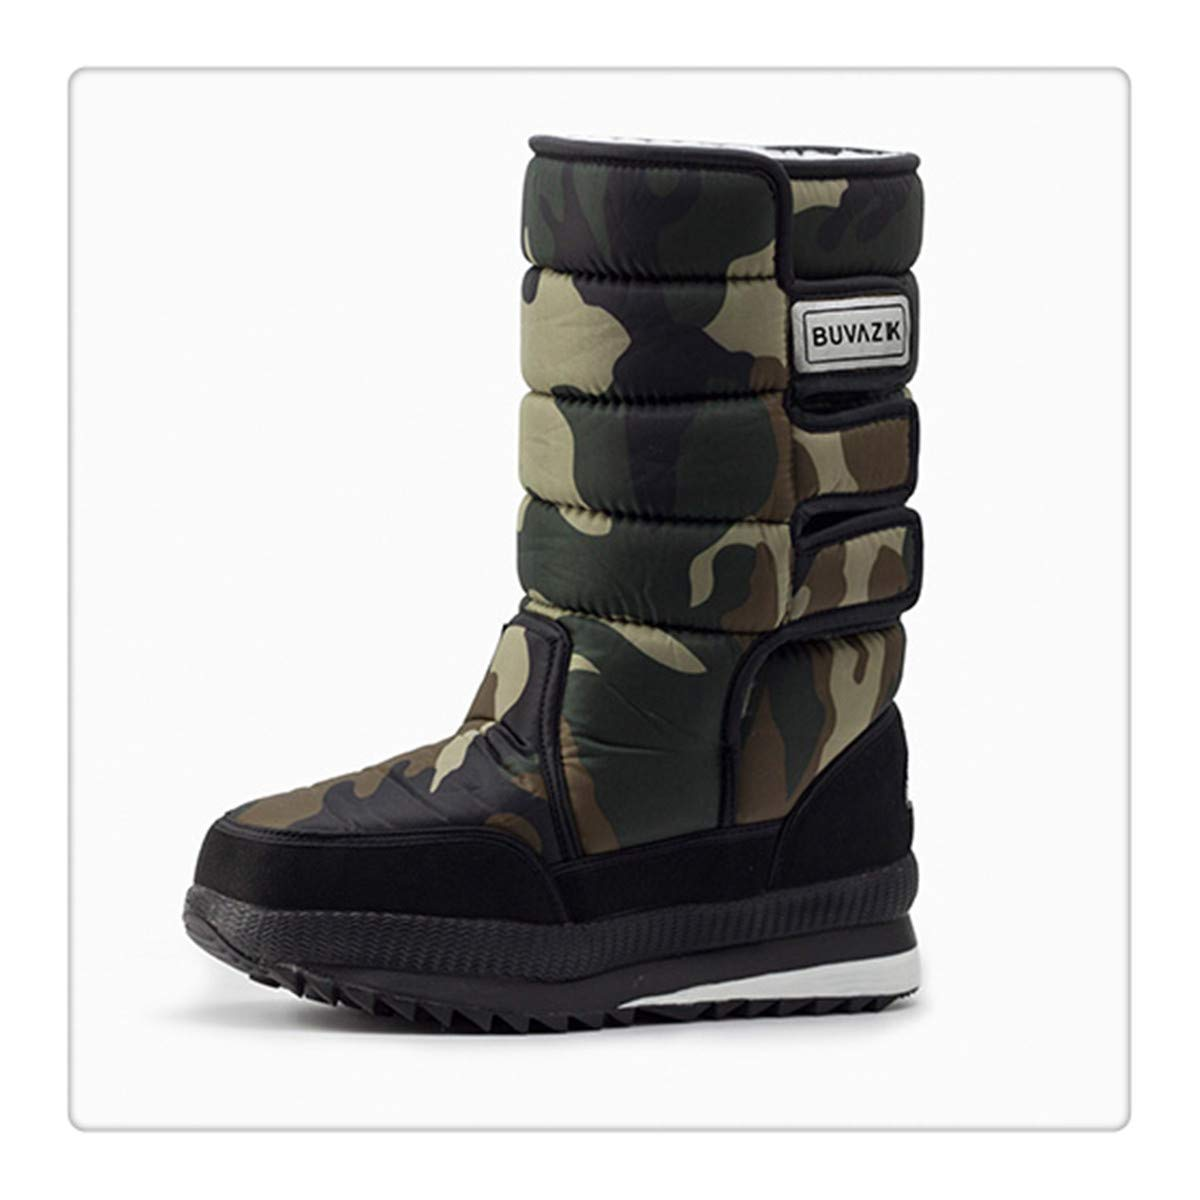 Hbvza Male Thickening Thermal Waterproof Snow Boots Fabric Inside Warm Knee-High Shoes